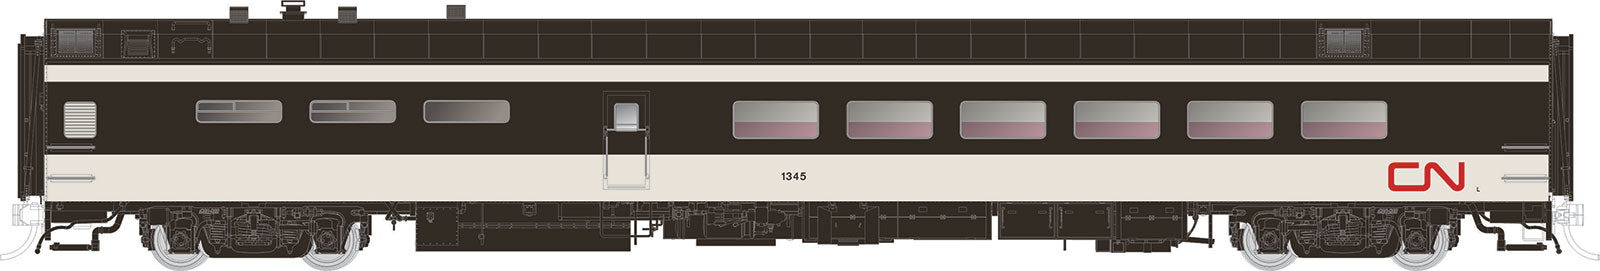 Rapido Trains  CN (1961 scheme)  Pullman-Standard Lightweight Dining Car